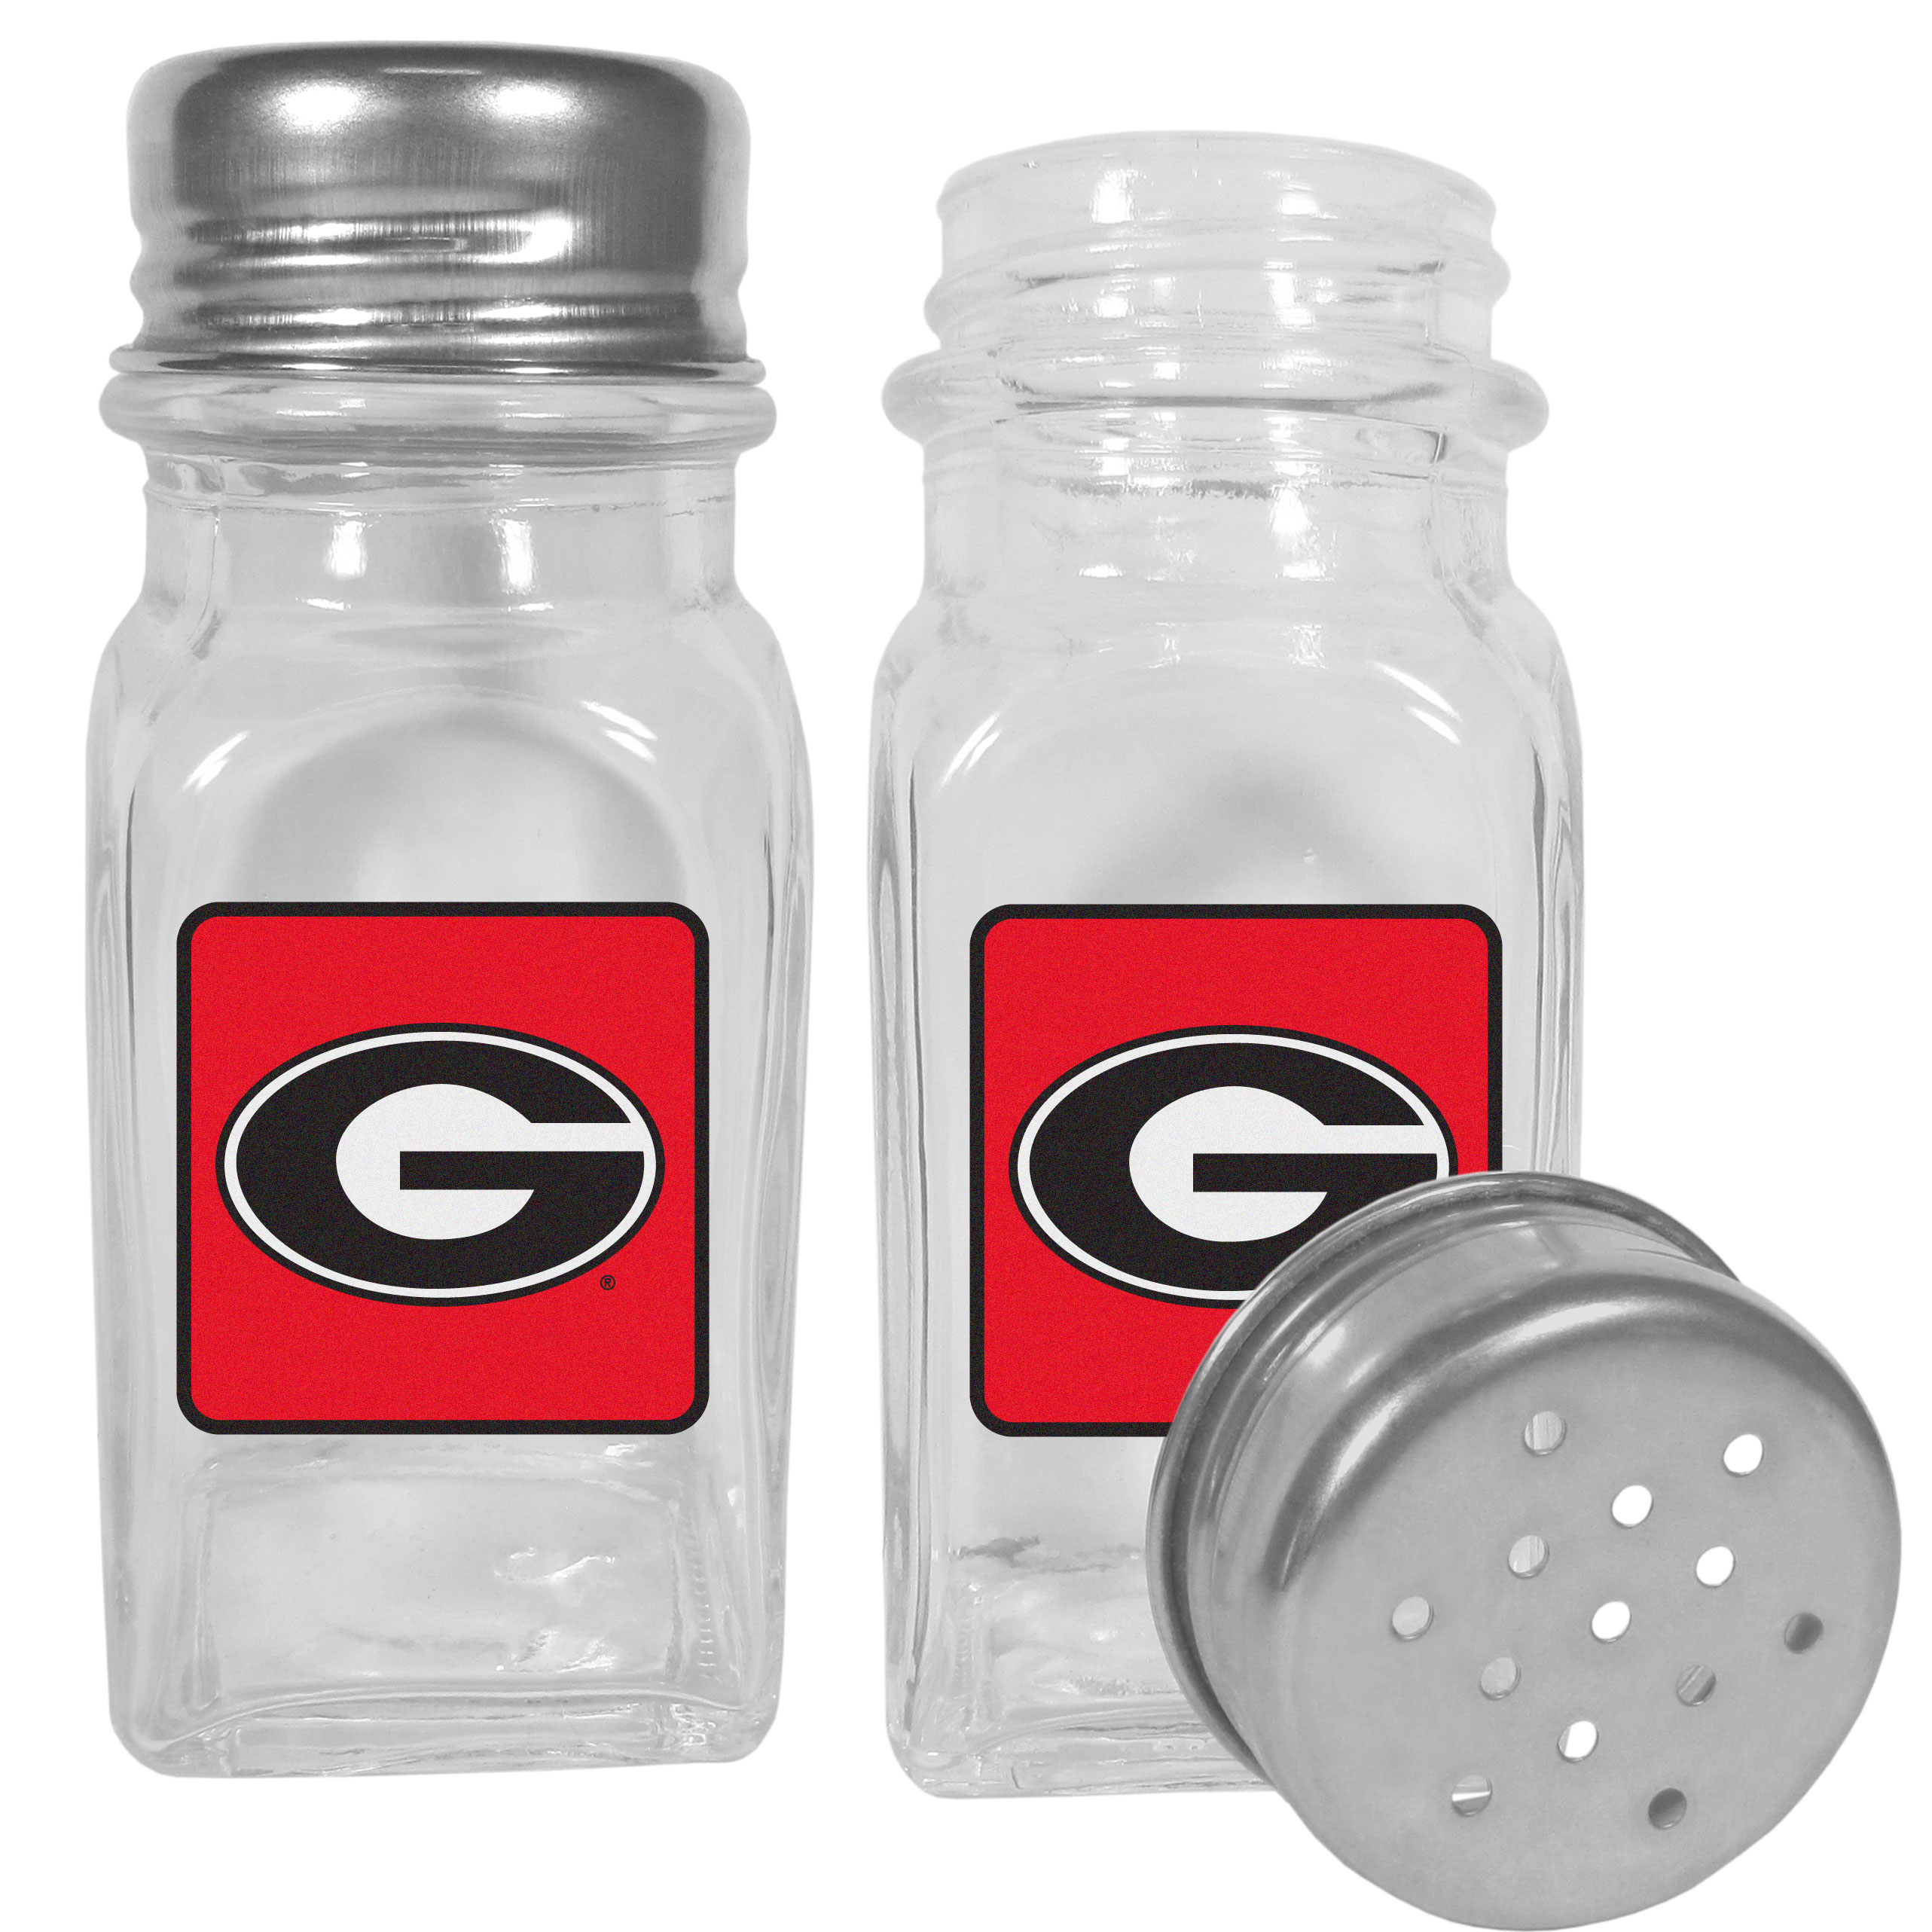 Georgia Bulldogs Graphics Salt and Pepper Shaker - No tailgate party is complete without your Georgia Bulldogs salt & pepper shakers featuring bright team logos. The diner replica salt and pepper shakers are glass with screw top lids. These team shakers are a great grill accessory whether you are barbecuing on the patio, picnicing or having a game day party.